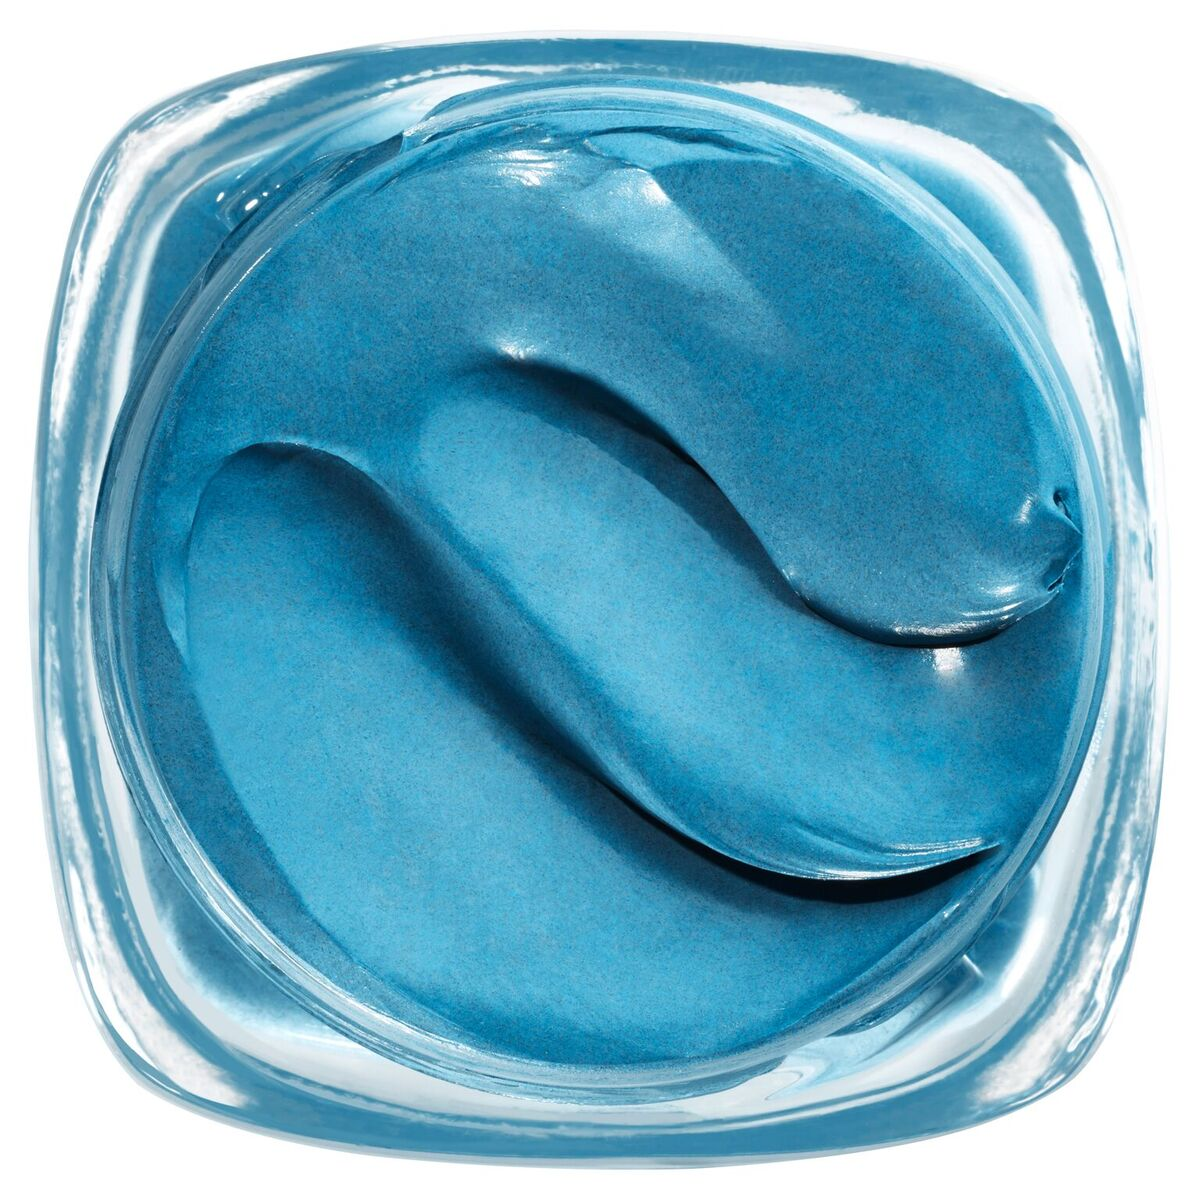 L'Oréal Paris Pure Clay Anti-Blemish Mask - RRP $19.99 (3)_preview